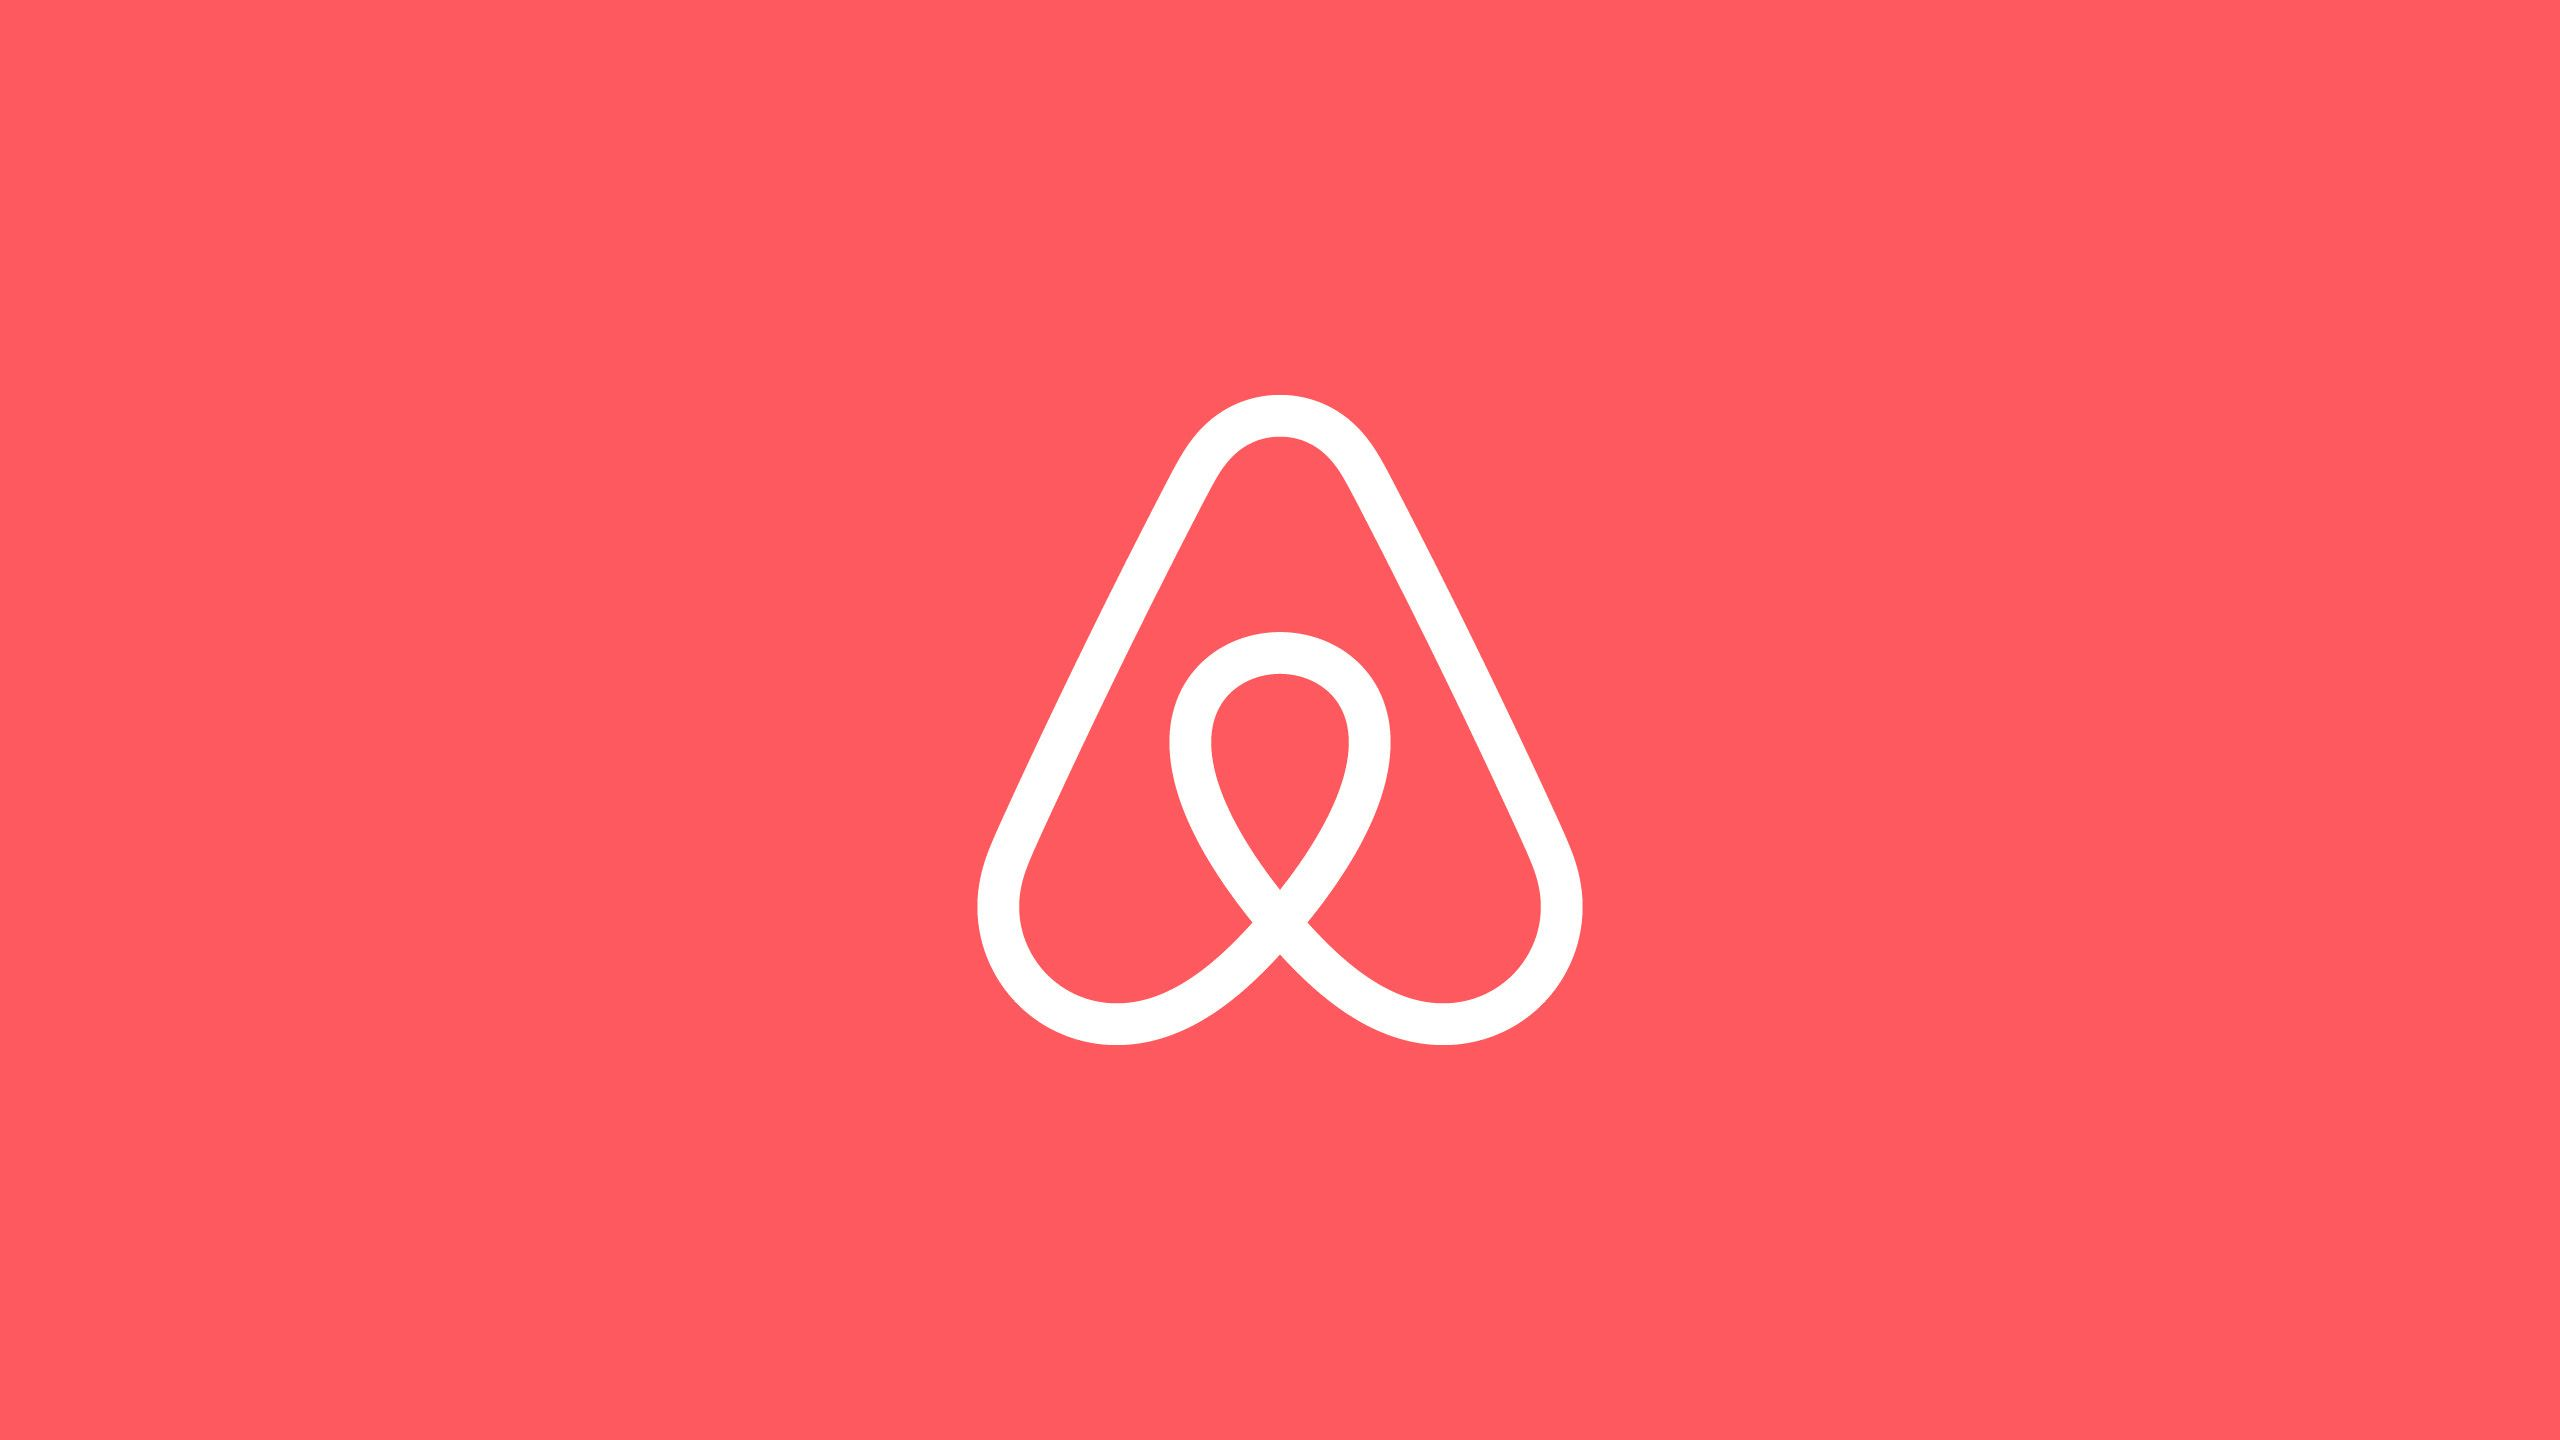 Airbnb Logo - Top designers react to Airbnb's controversial new logo | VentureBeat